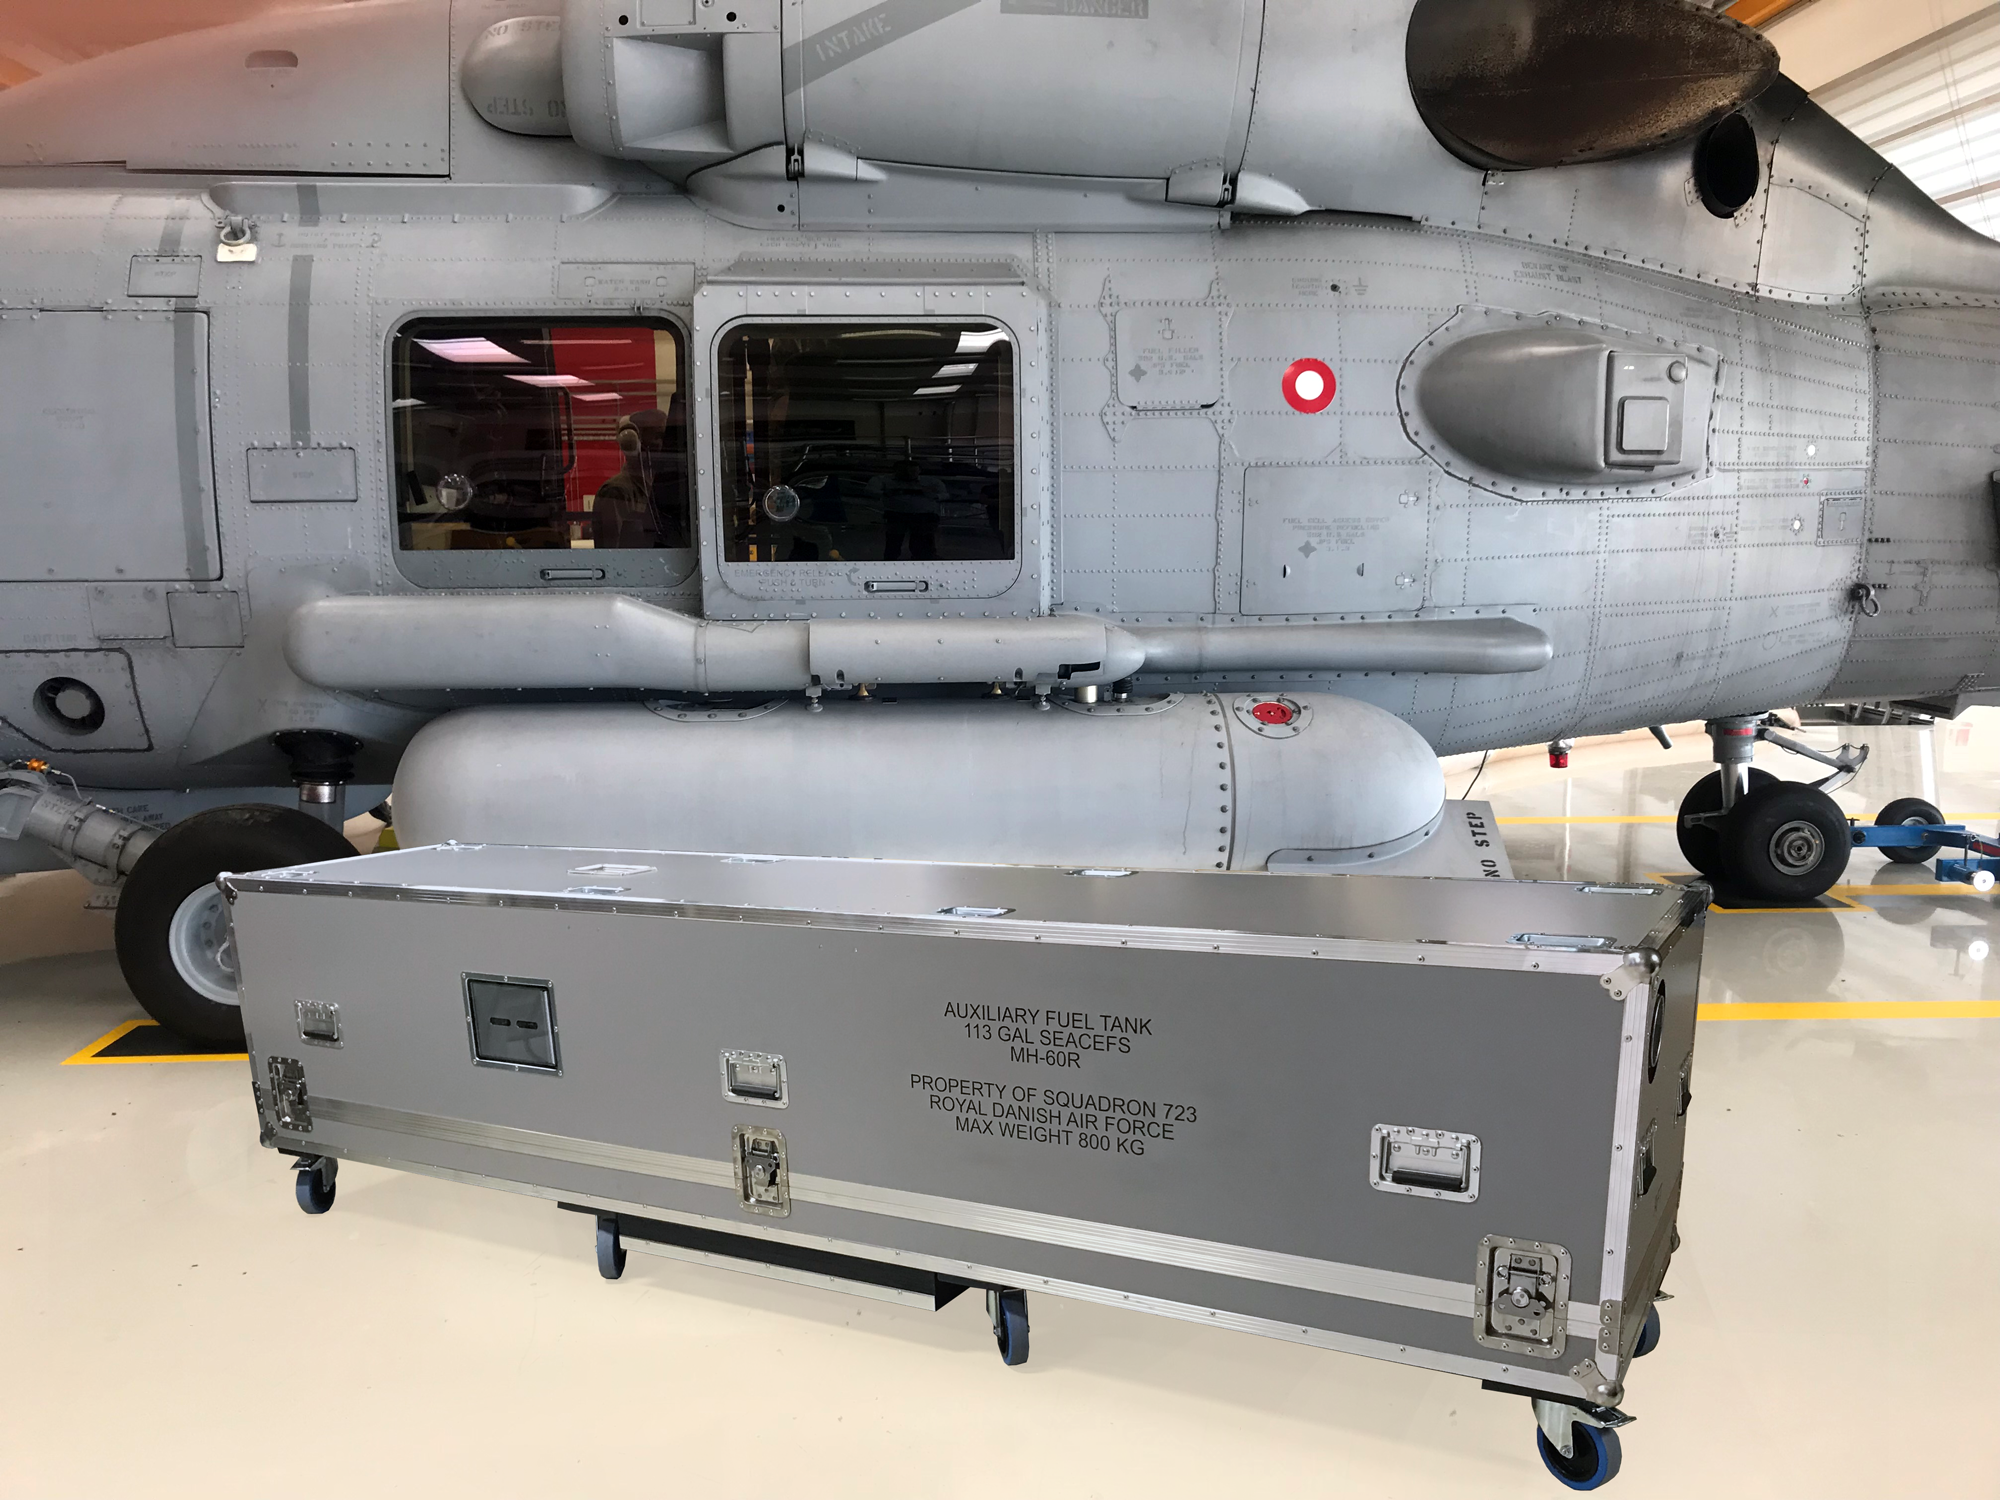 Specialbygget Flightcase for SEAHAWK fuel tank